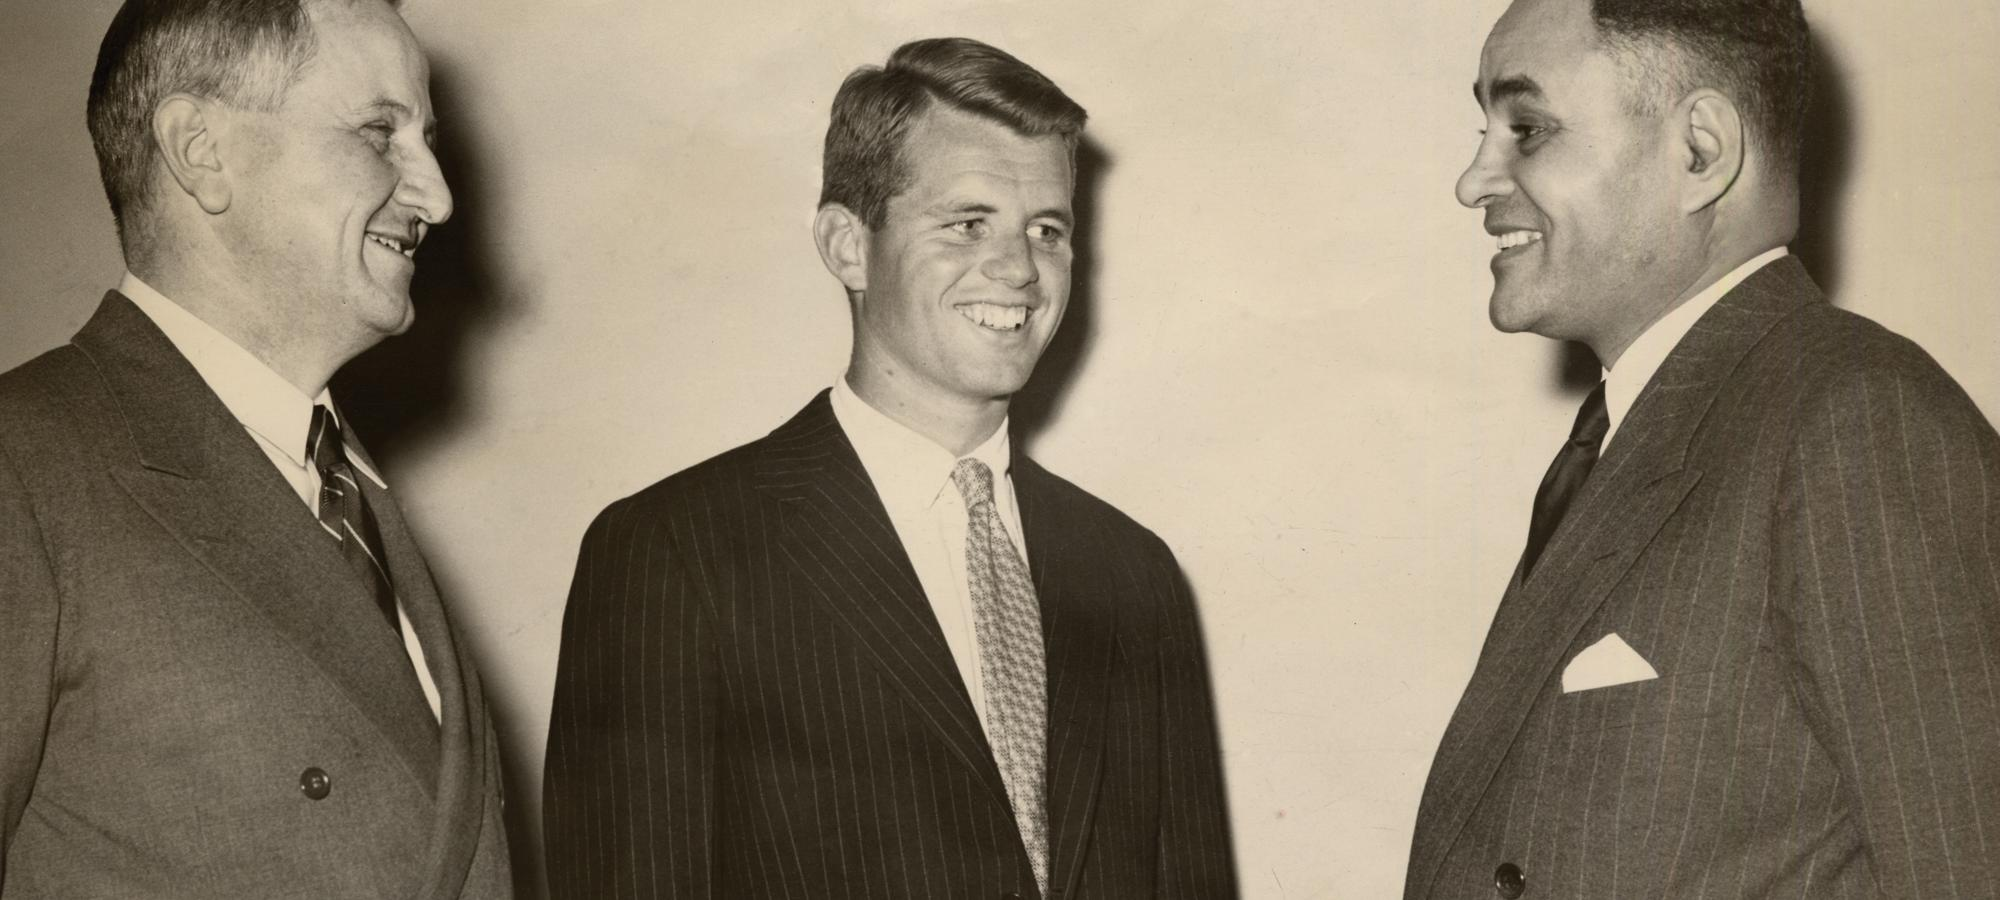 Nobel Prize winner Ralph Bunche, right, with Dean F.D.G. Ribble '21 and Robert F. Kennedy '51